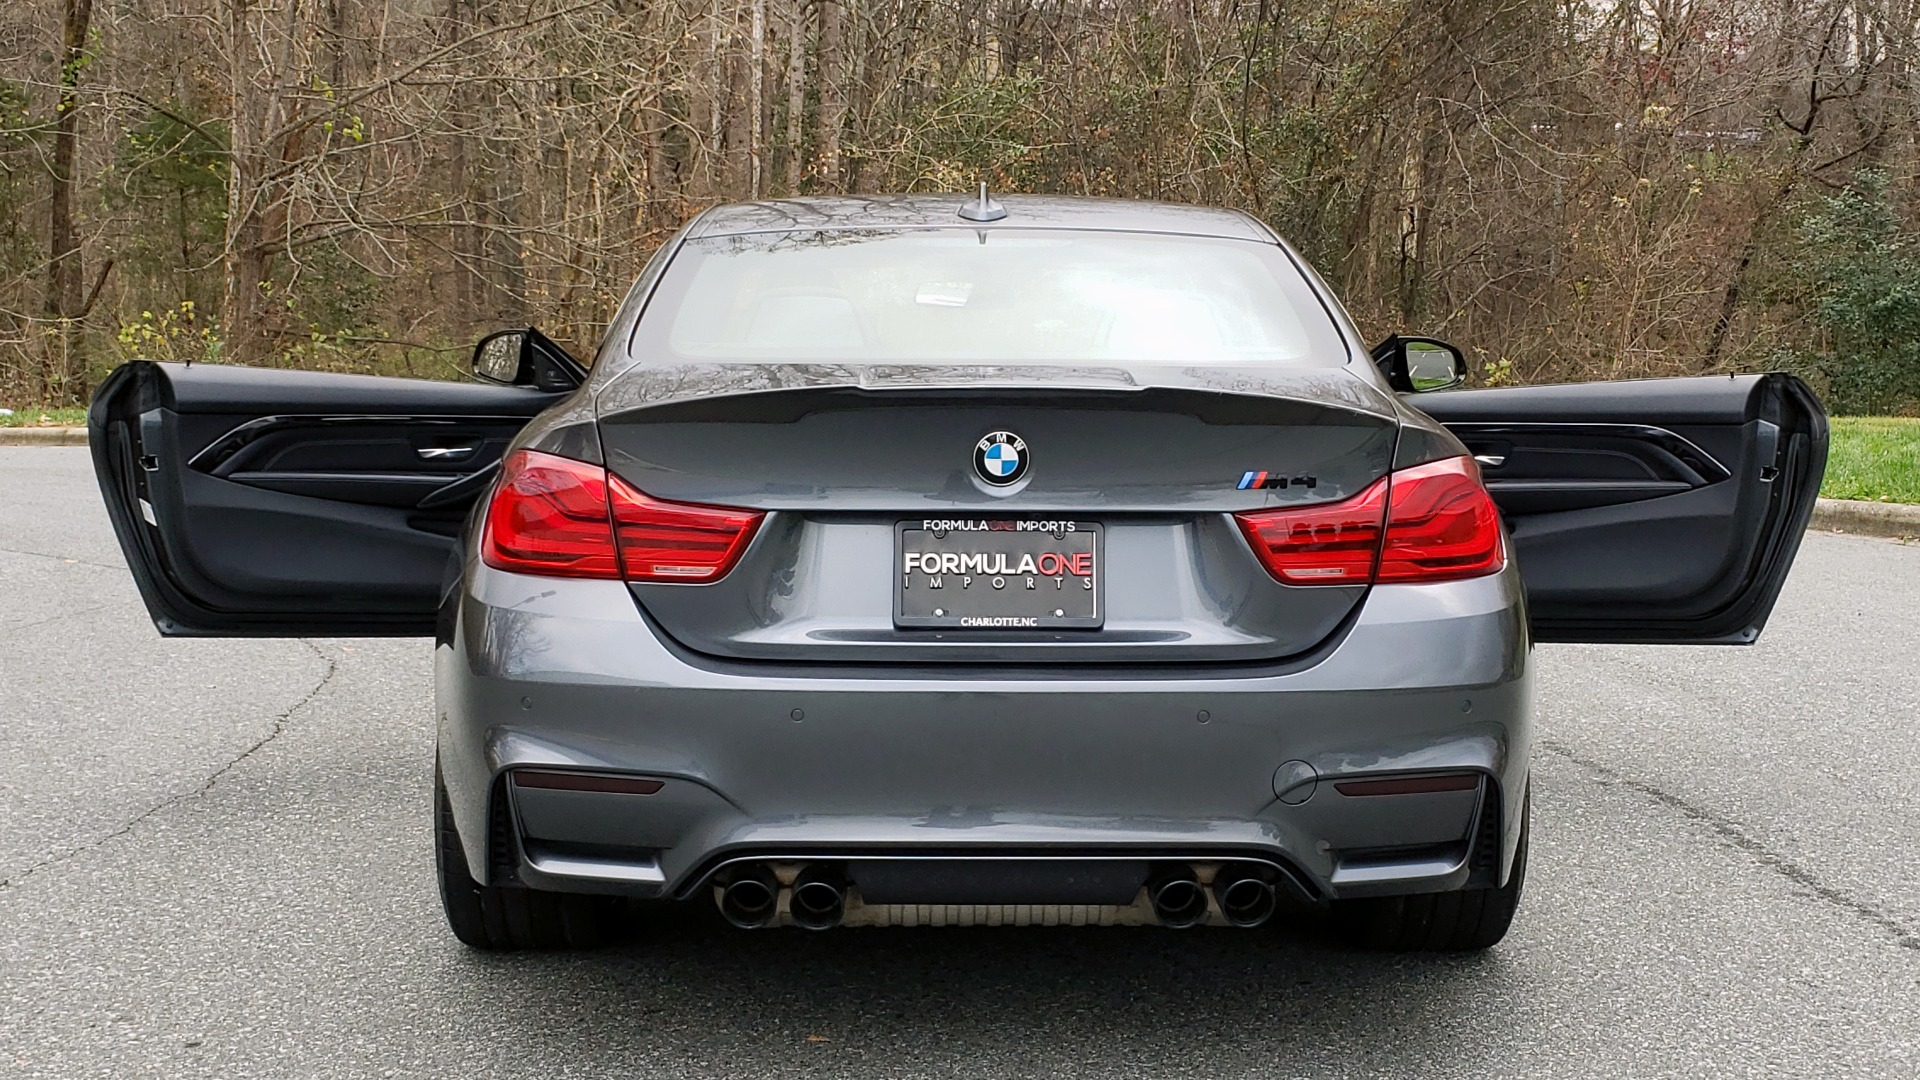 Used 2018 BMW M4 M-COMP / EXEC PKG / 7-SPD DBL CLUTCH / NAV / REARVIEW for sale Sold at Formula Imports in Charlotte NC 28227 54